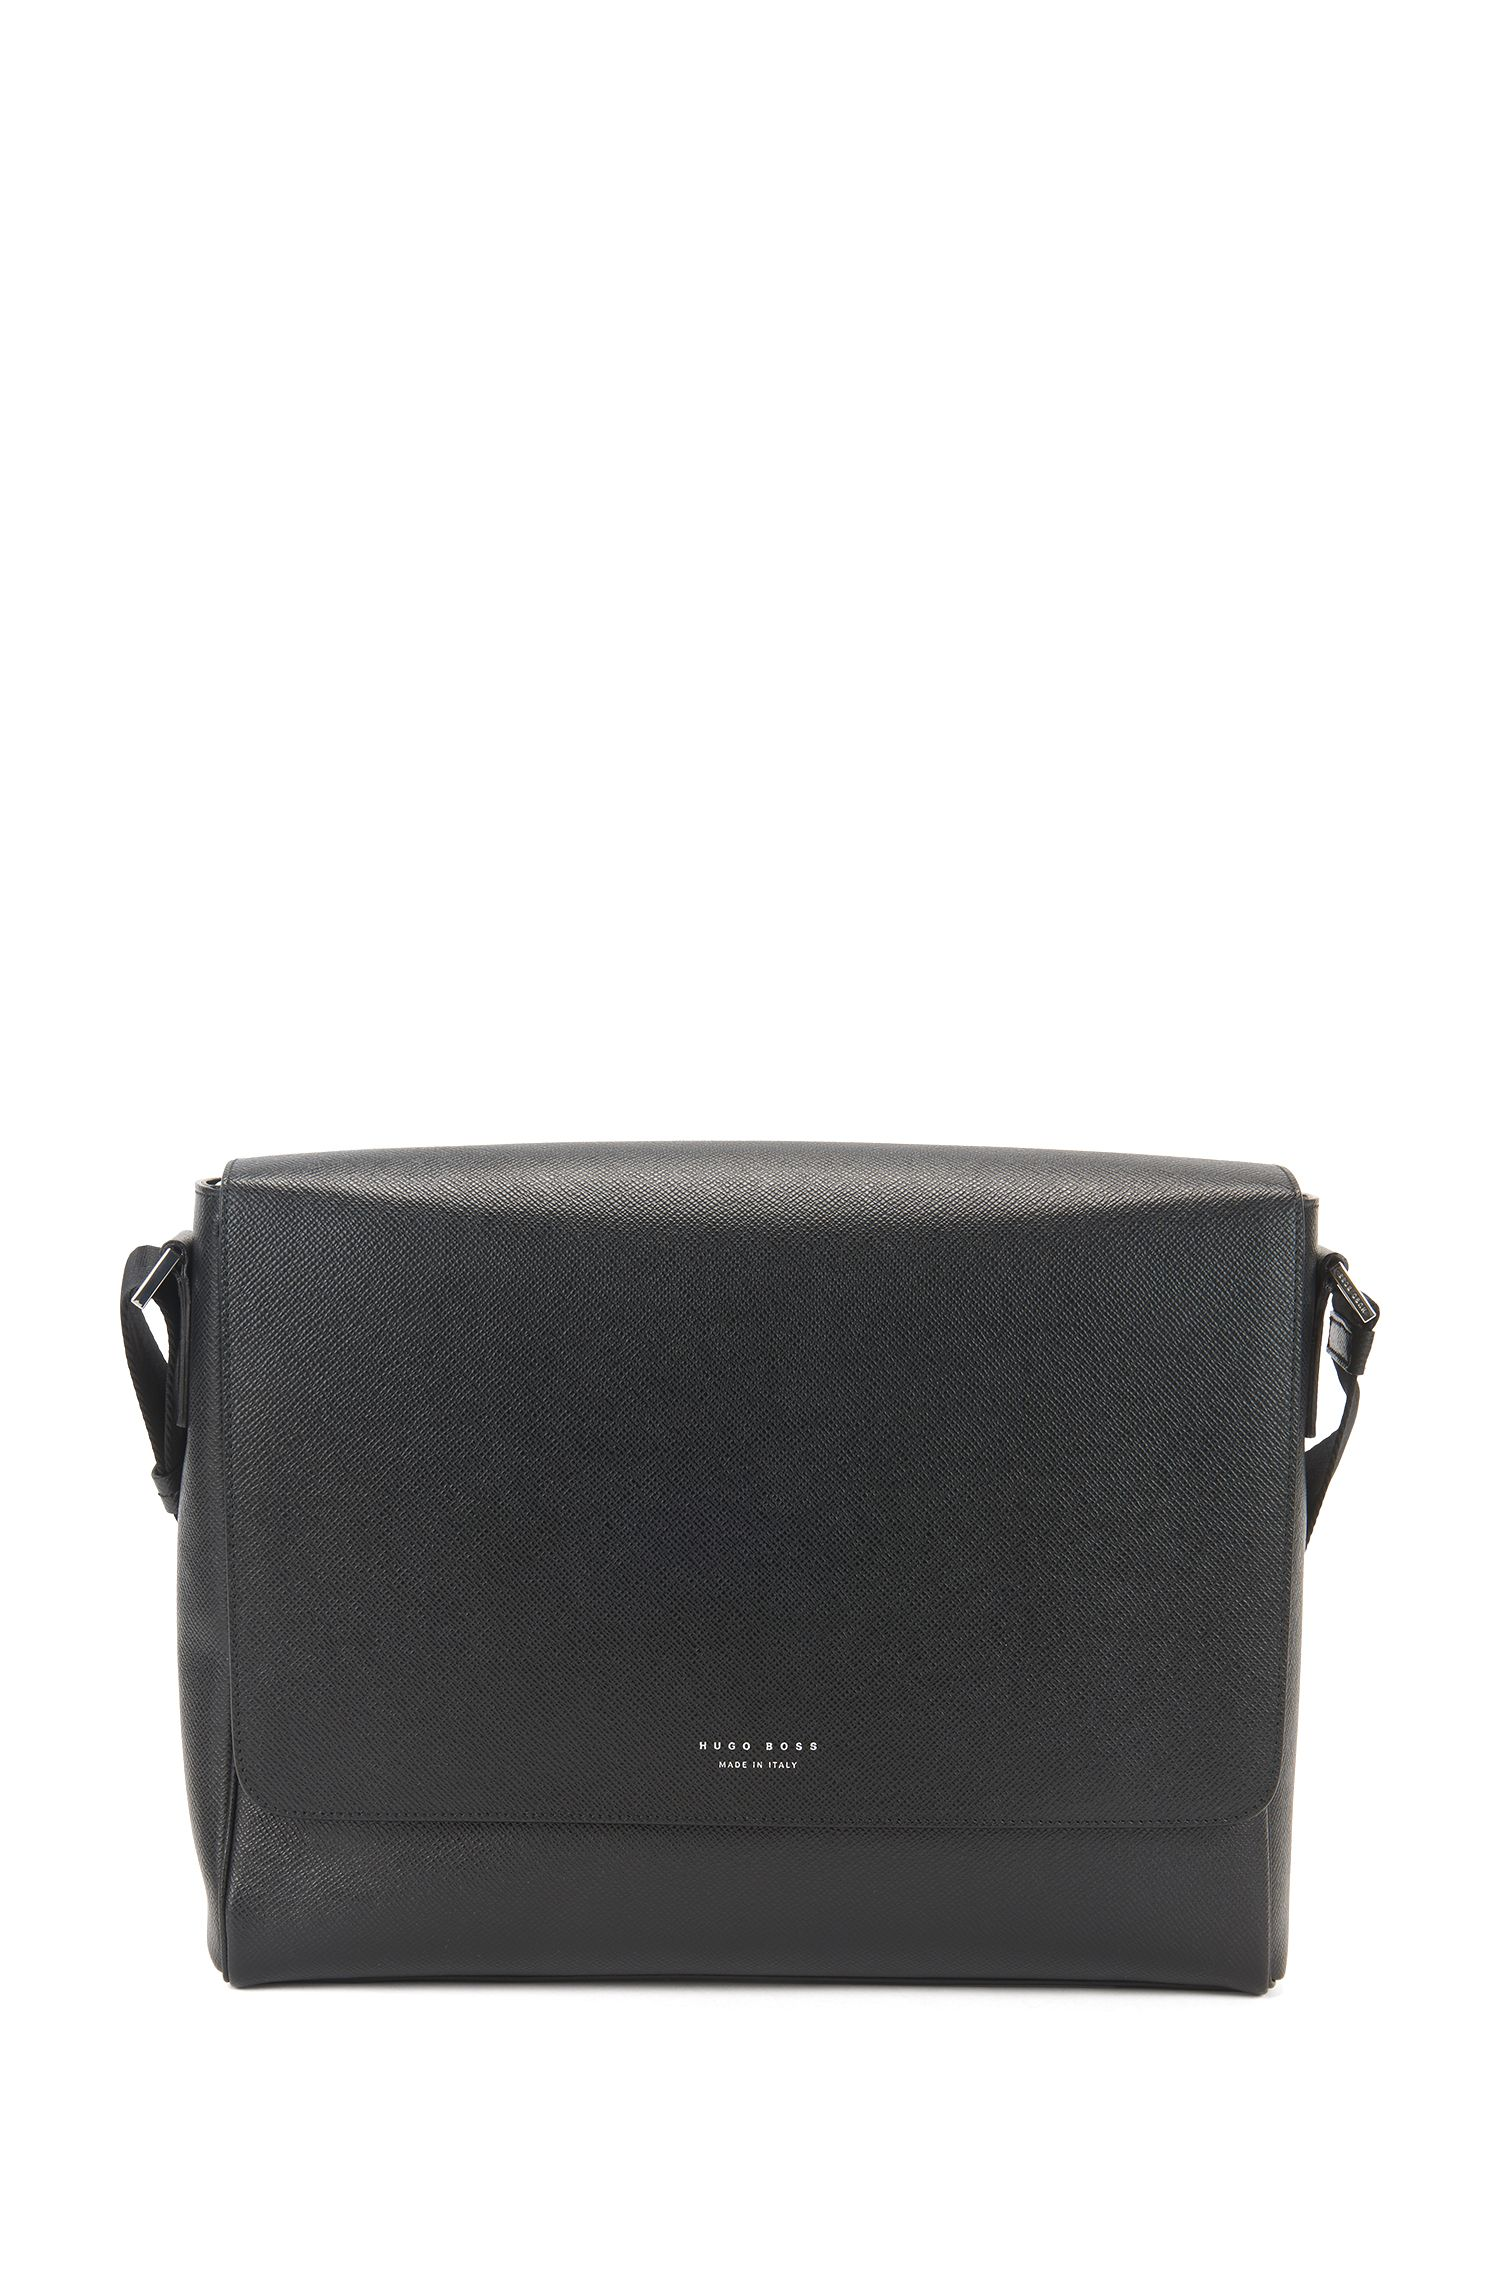 Leather Messenger Bag | Signature Mess Flap